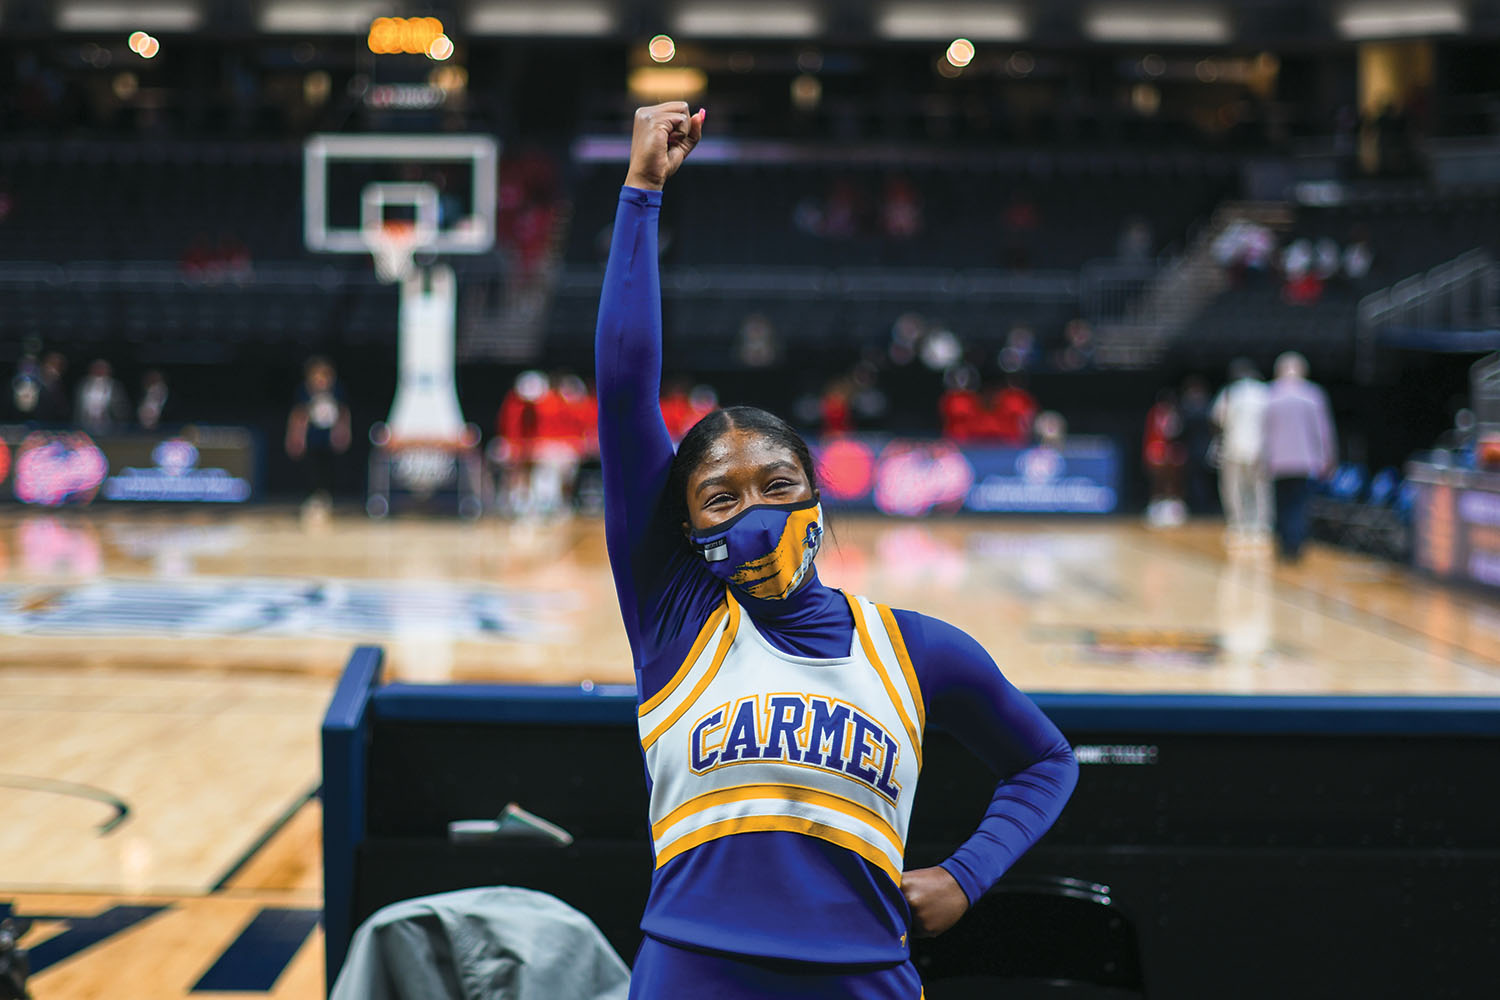 Trinity Griffin, varsity cheerleader and senior, cheers for the varsity basketball team at a home game in March. She said one of the biggest challenges to being a student athlete is trying to maintain grades at school while performing for a sport. Although she said she values her grades, she said she prioritizes her mental health over her school work and grades.